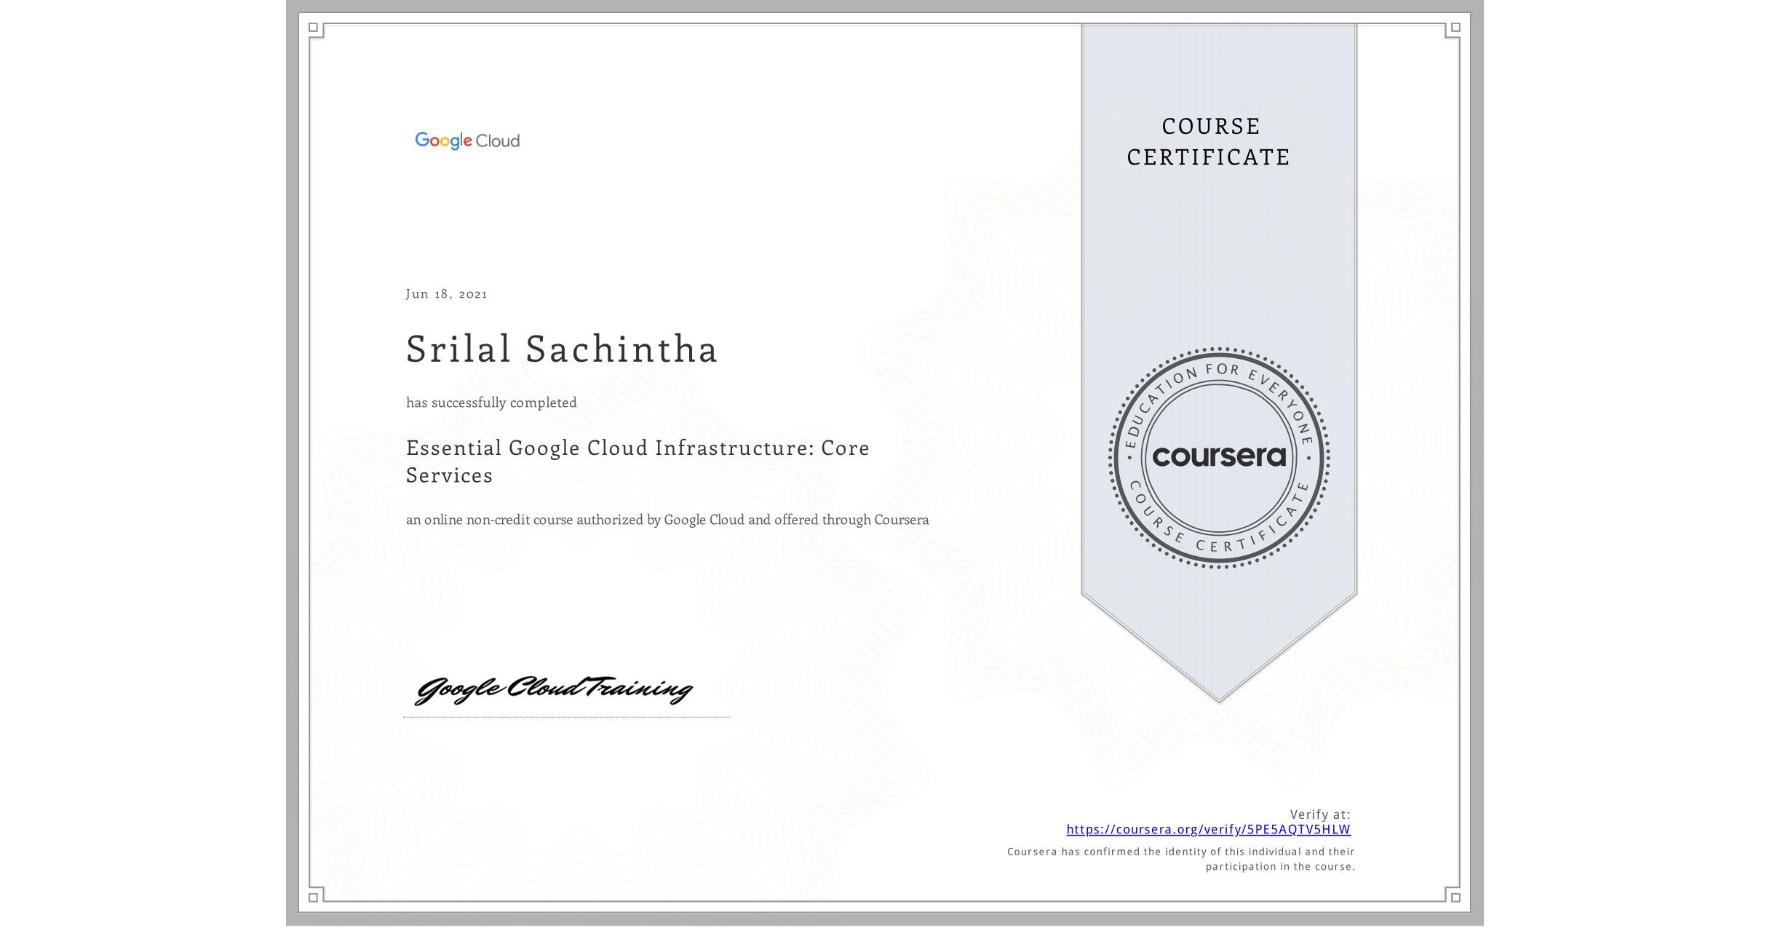 View certificate for Srilal Sachintha, Essential Google Cloud Infrastructure: Core Services, an online non-credit course authorized by Google Cloud and offered through Coursera